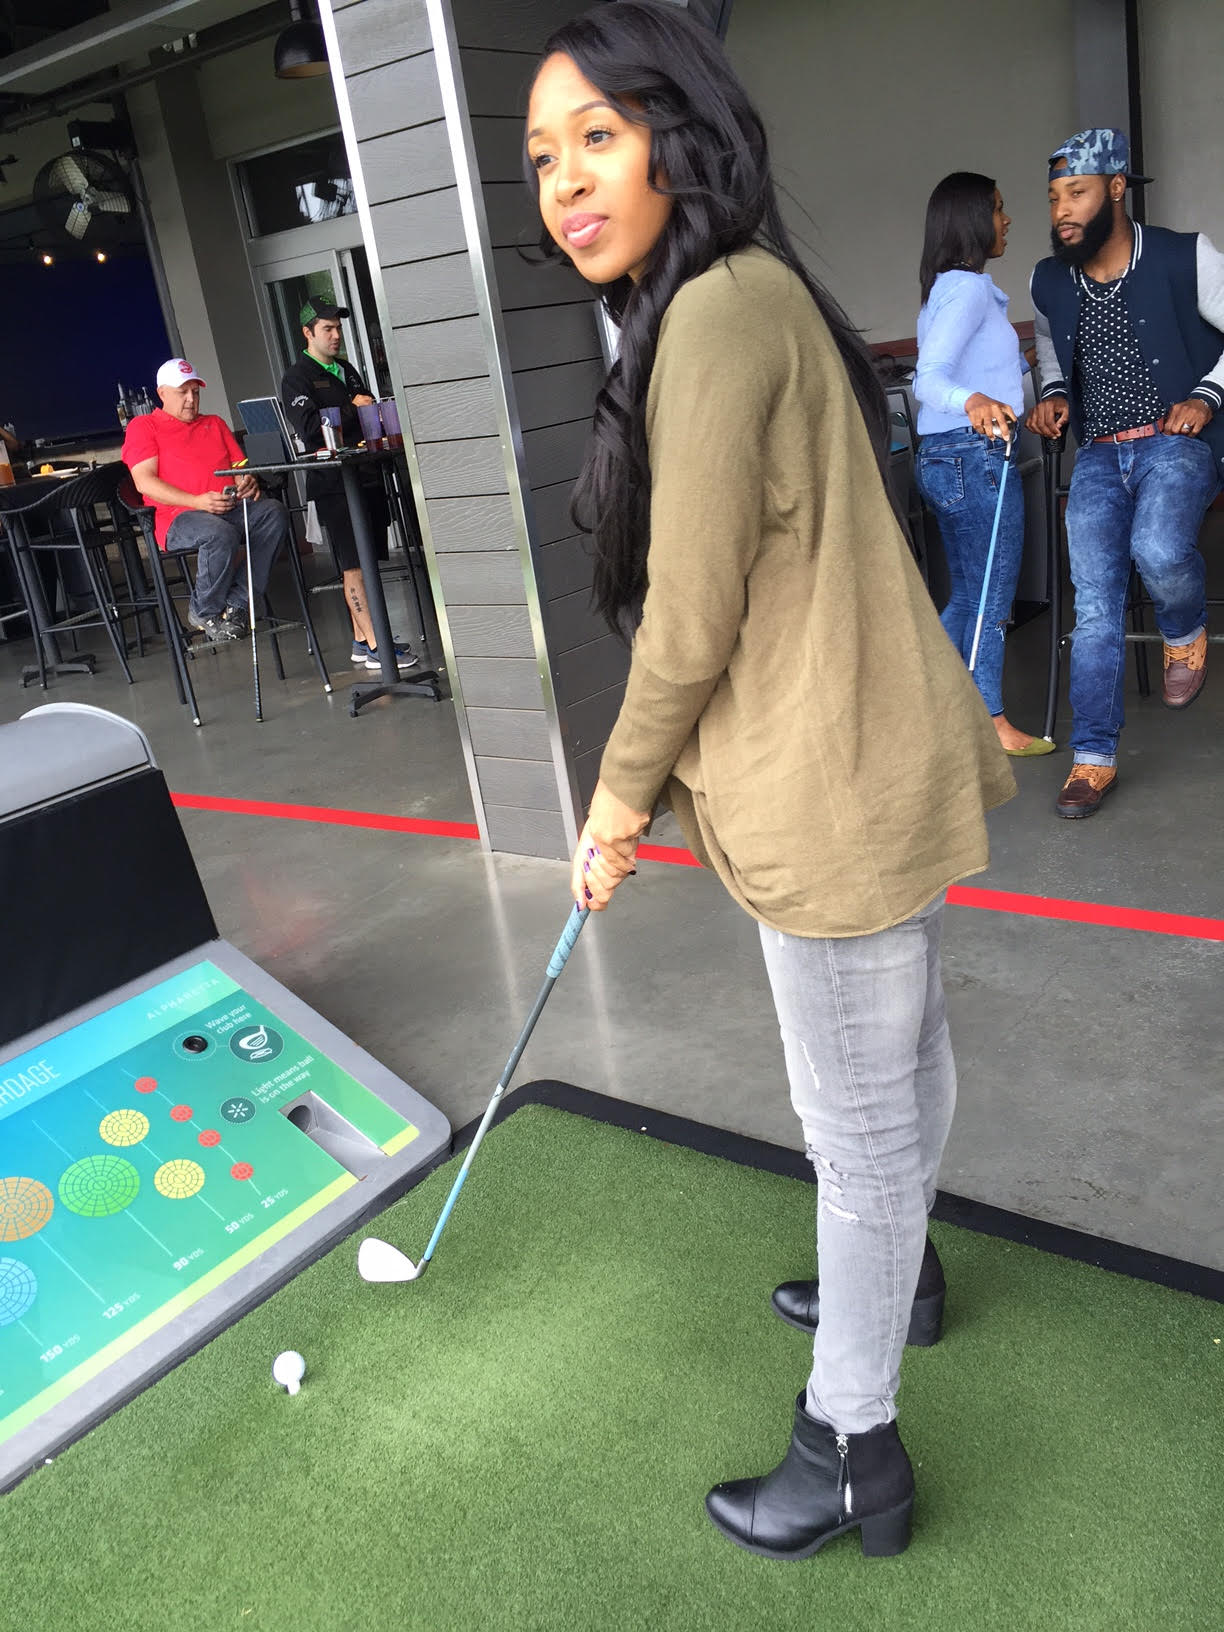 Mattieologie: #FirstTimersClub At Topgolf